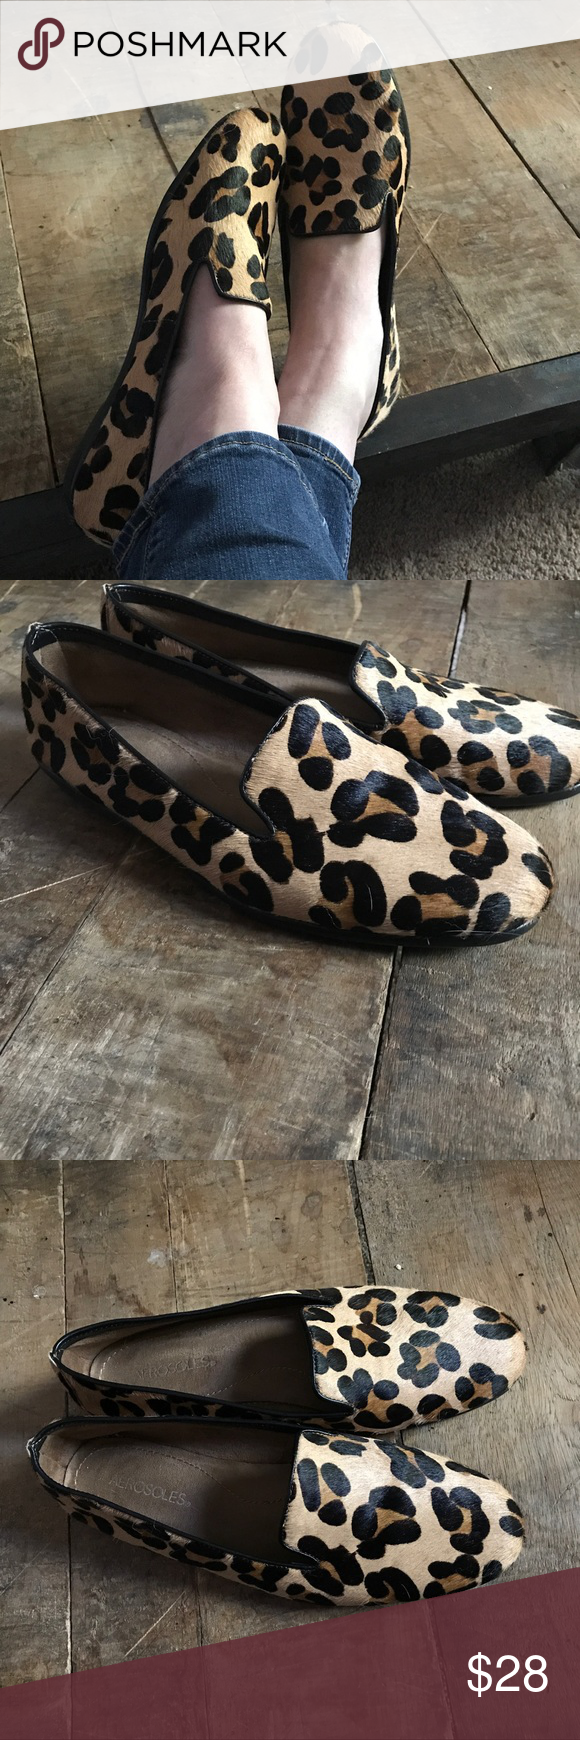 f0bd5b863063 Aerosoles Betunia Leopard Print Calf Hair Loafers Aerosoles Betunia Leopard  Print Calf Hair Loafers. Size 9 1/2. Cute and comfortable shoes.